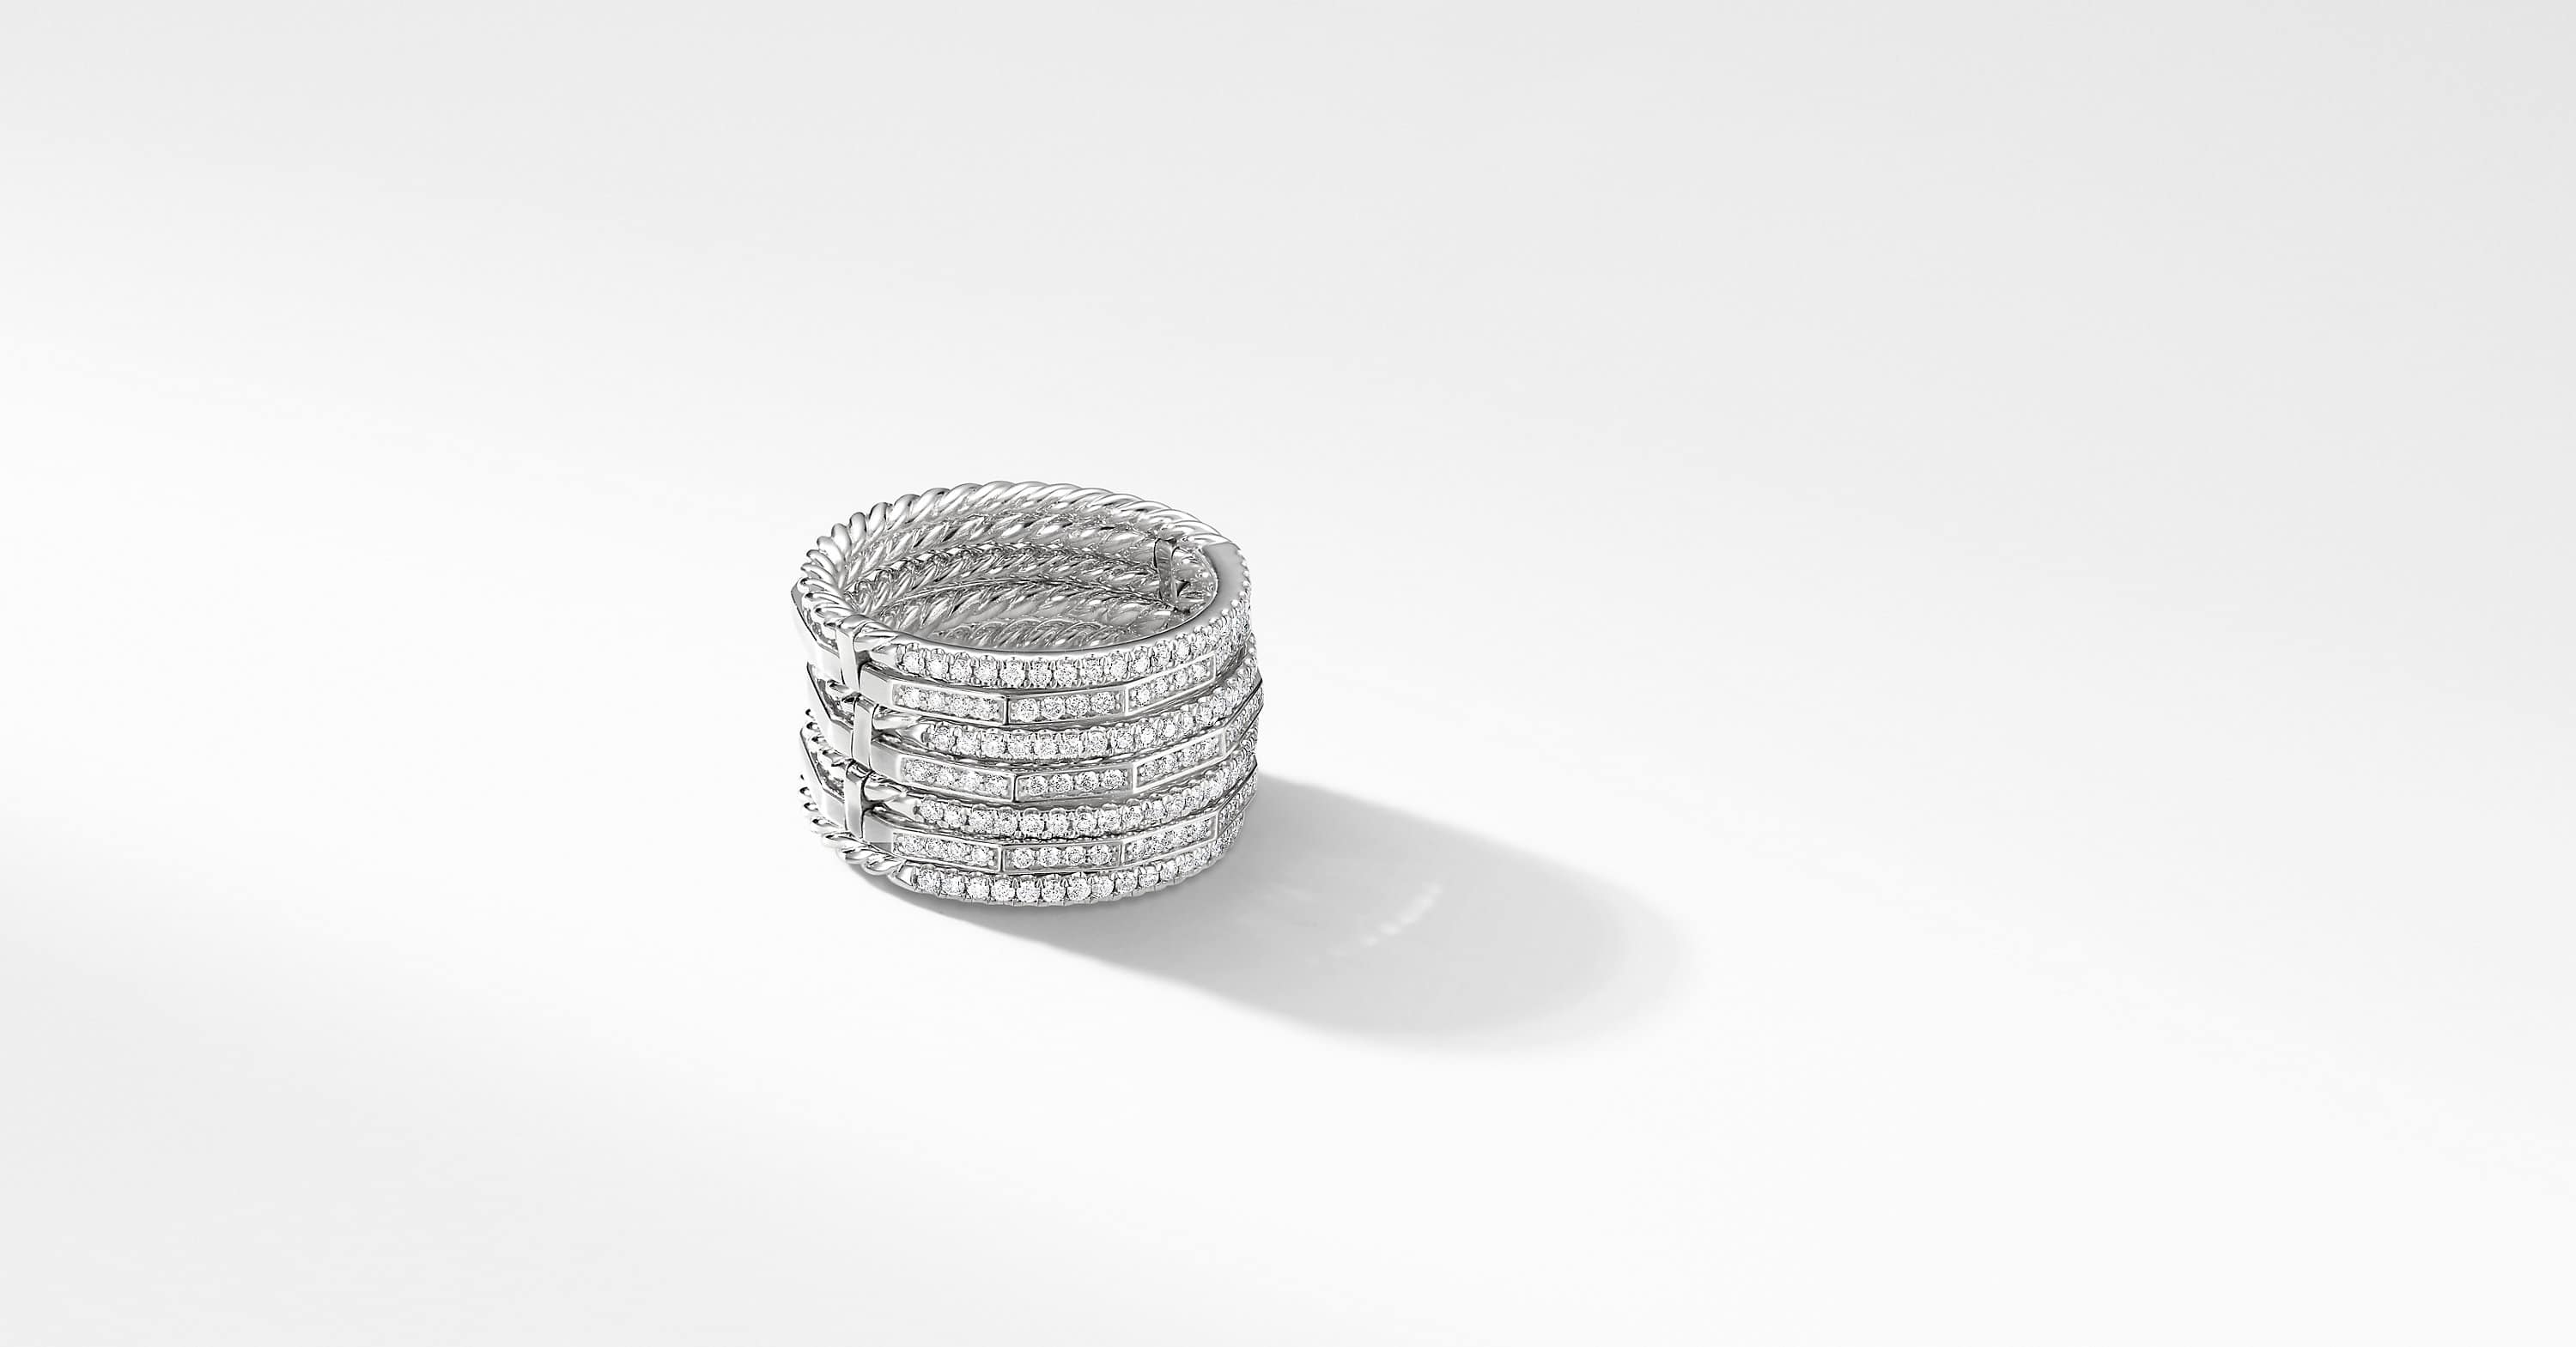 Stax Full Pavé Ring in 18K White Gold